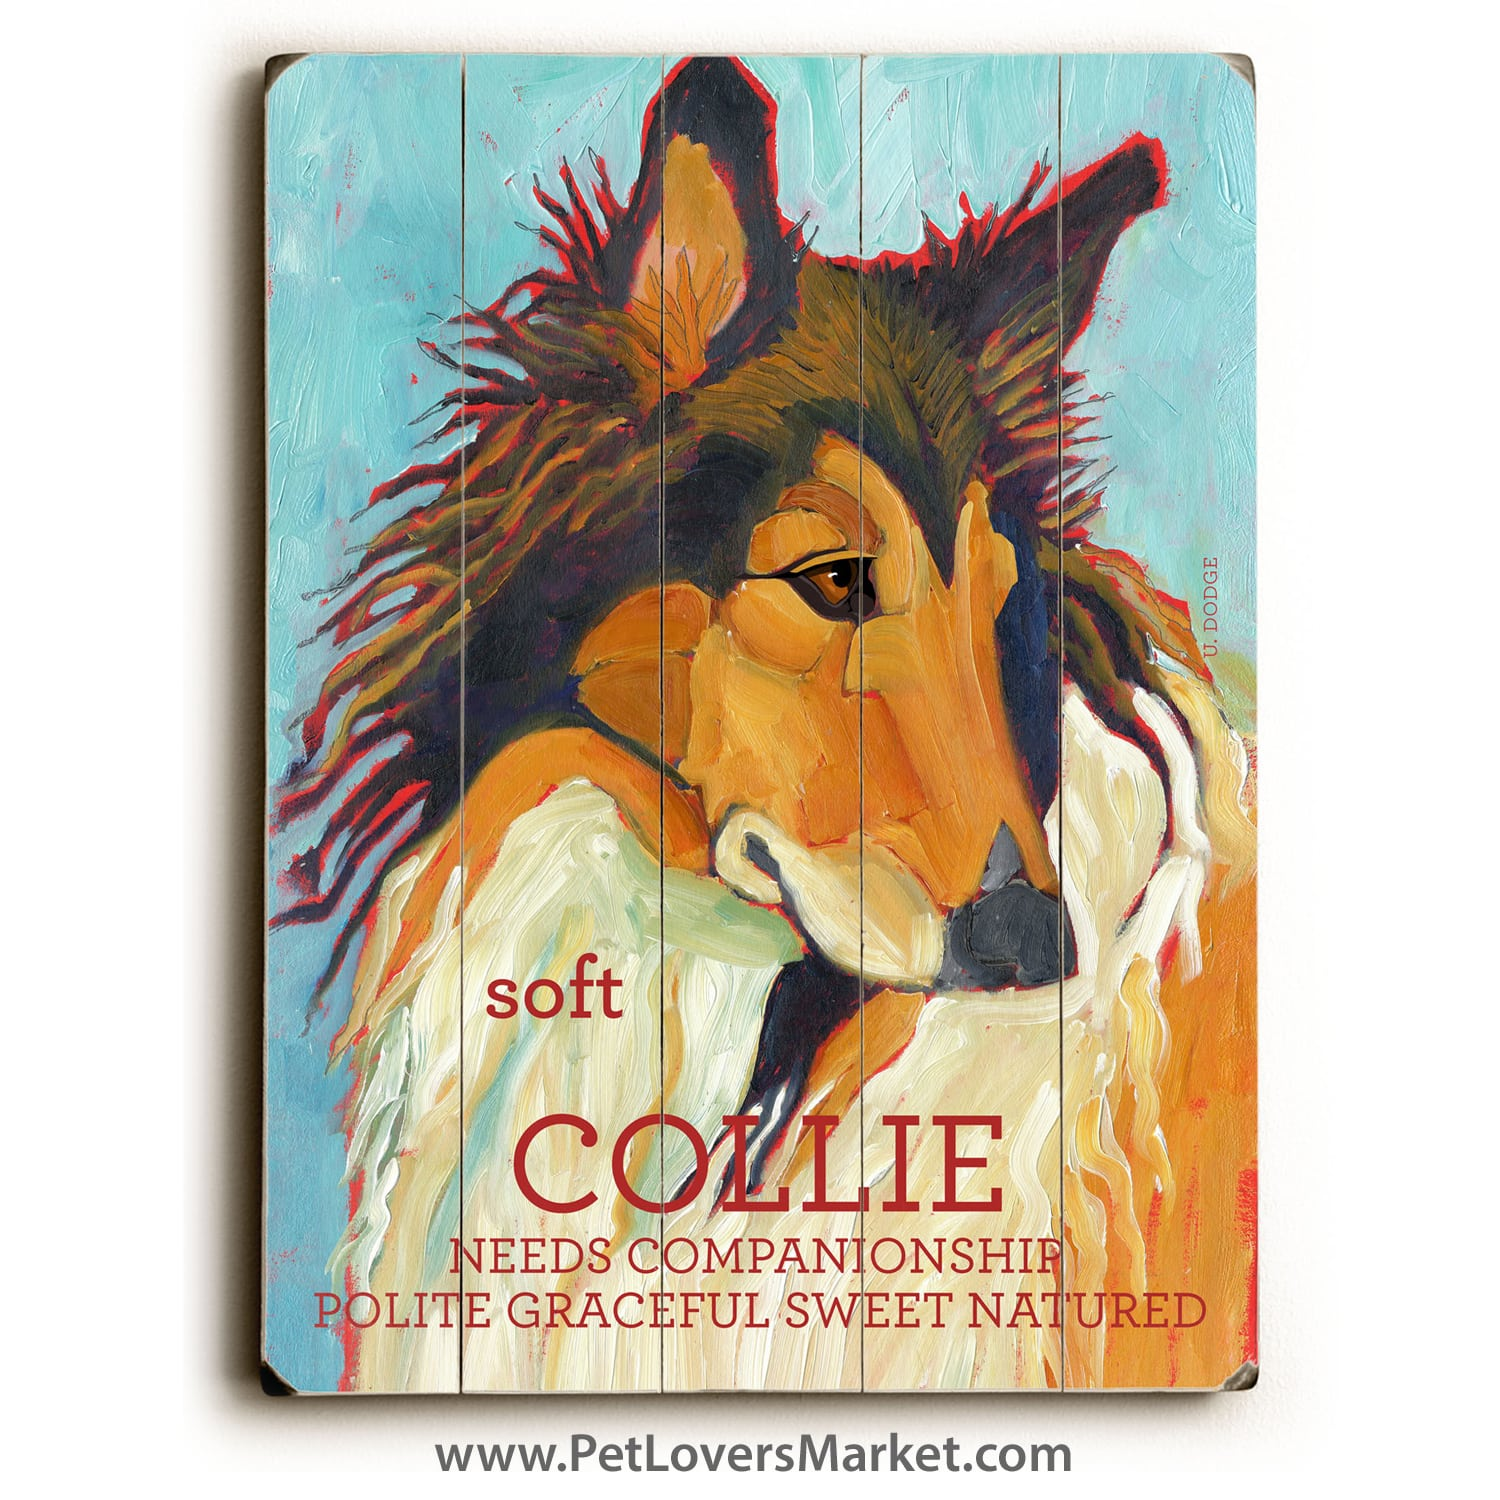 Collie: Dog Print on Wood